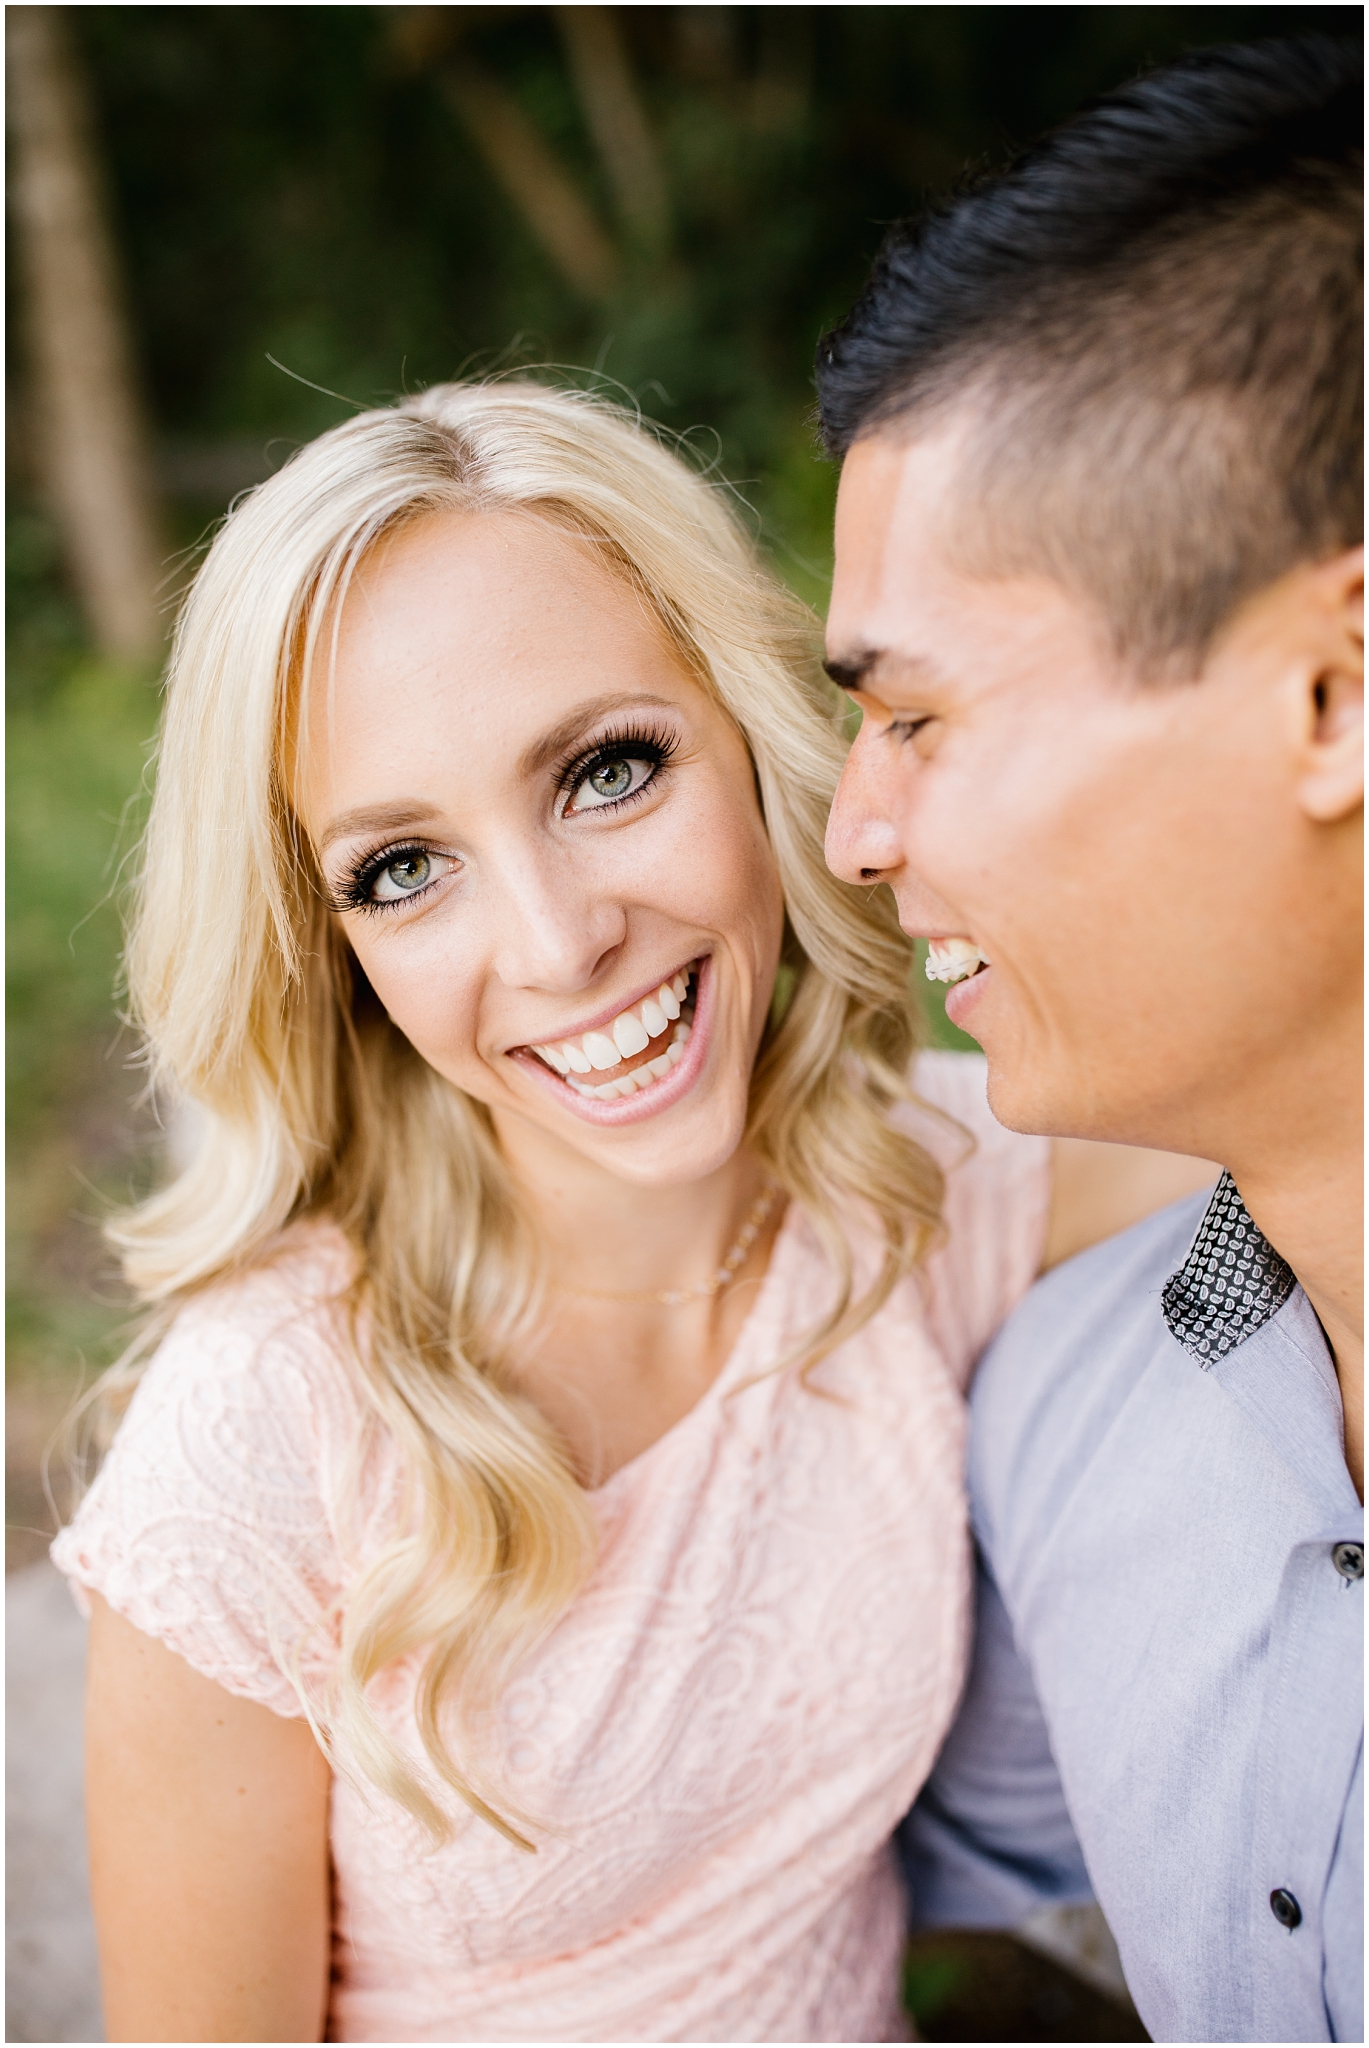 HCengagements-128_Lizzie-B-Imagery-Utah-Wedding-Photographer-Park-City-Salt-Lake-City-Payson-Canyon-Engagement-Session.jpg